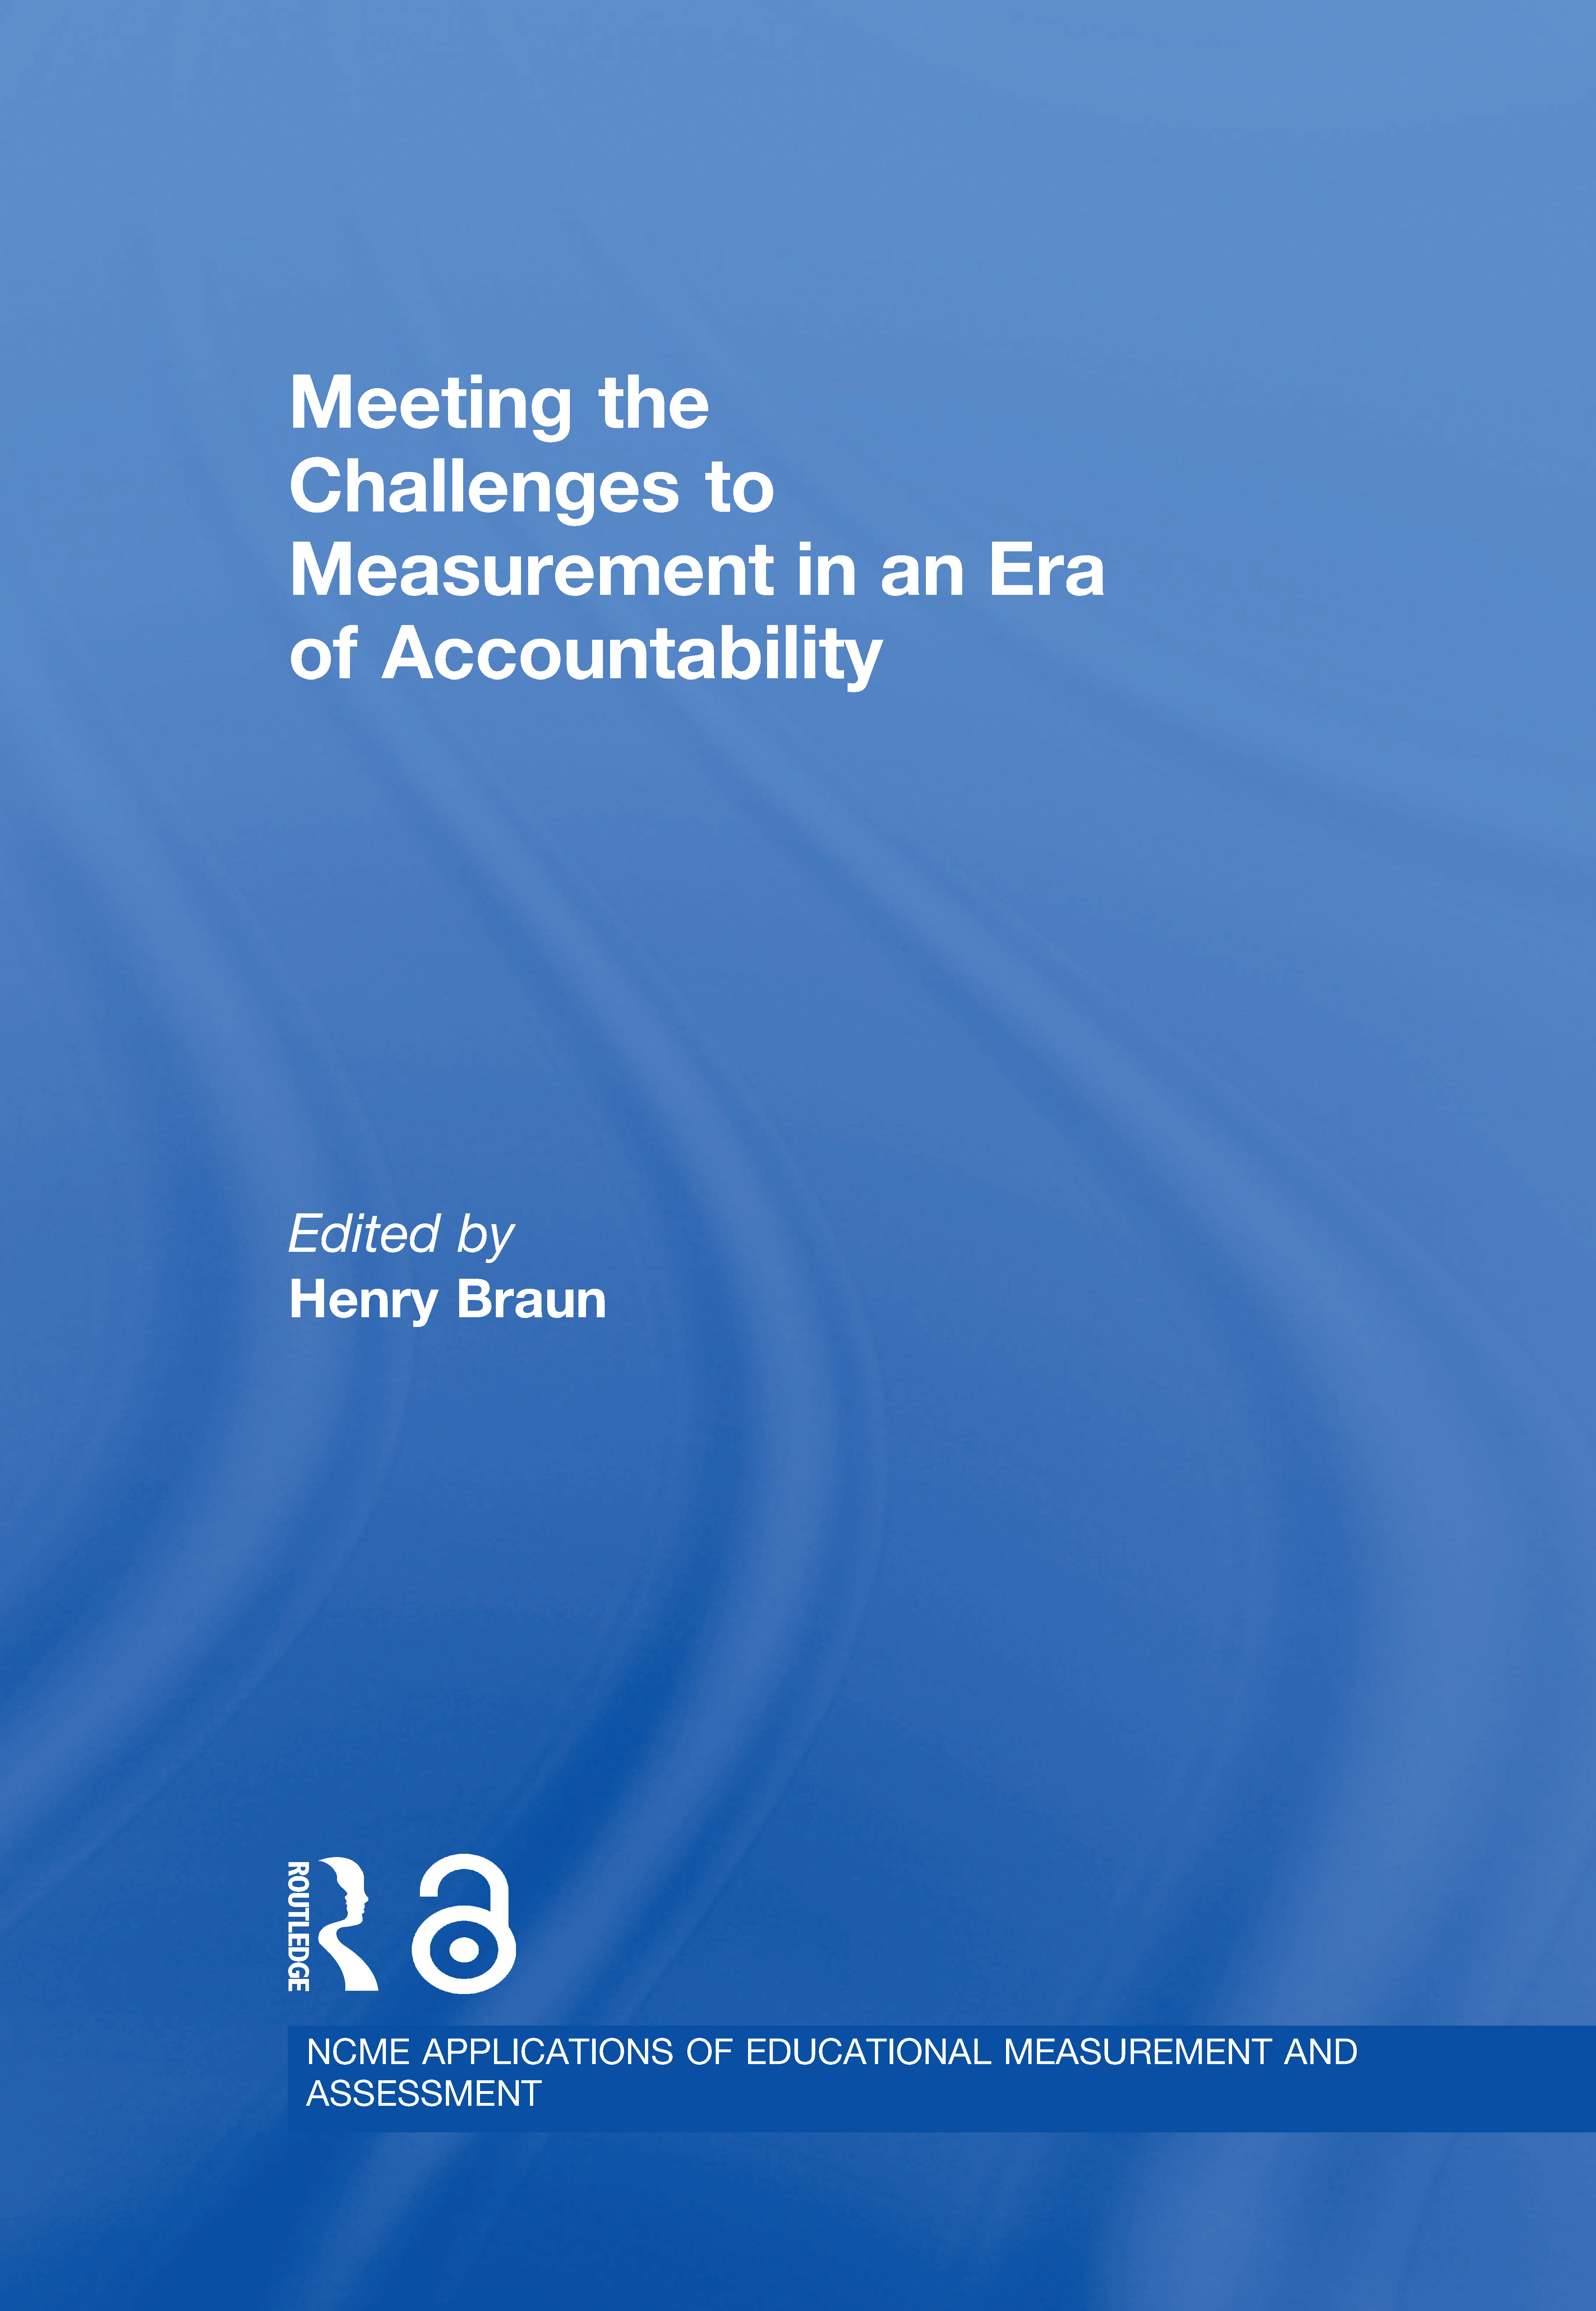 The Challenges to Measurement in an Era of Accountability: Introduction and Overview